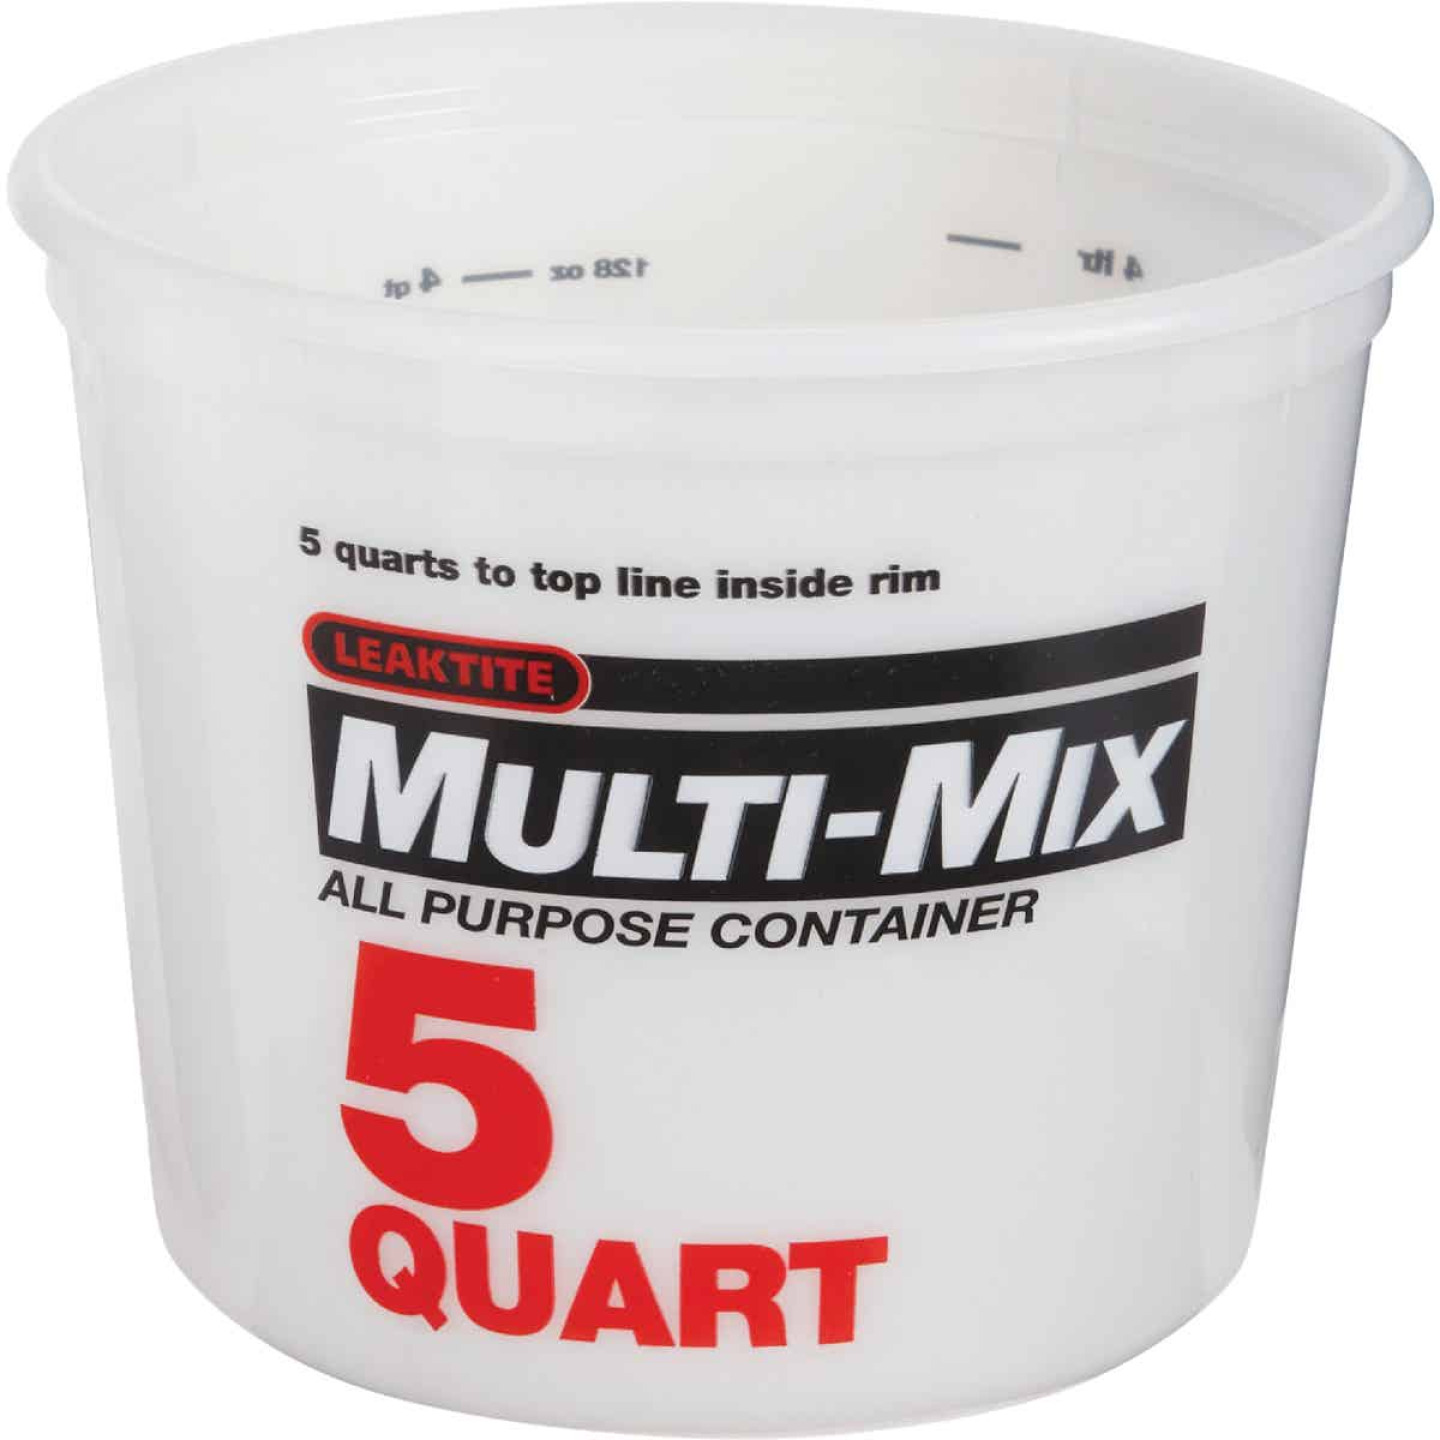 Leaktite 5 Qt. White Multi-Mix All Purpose Mixing And Storage Container Image 1